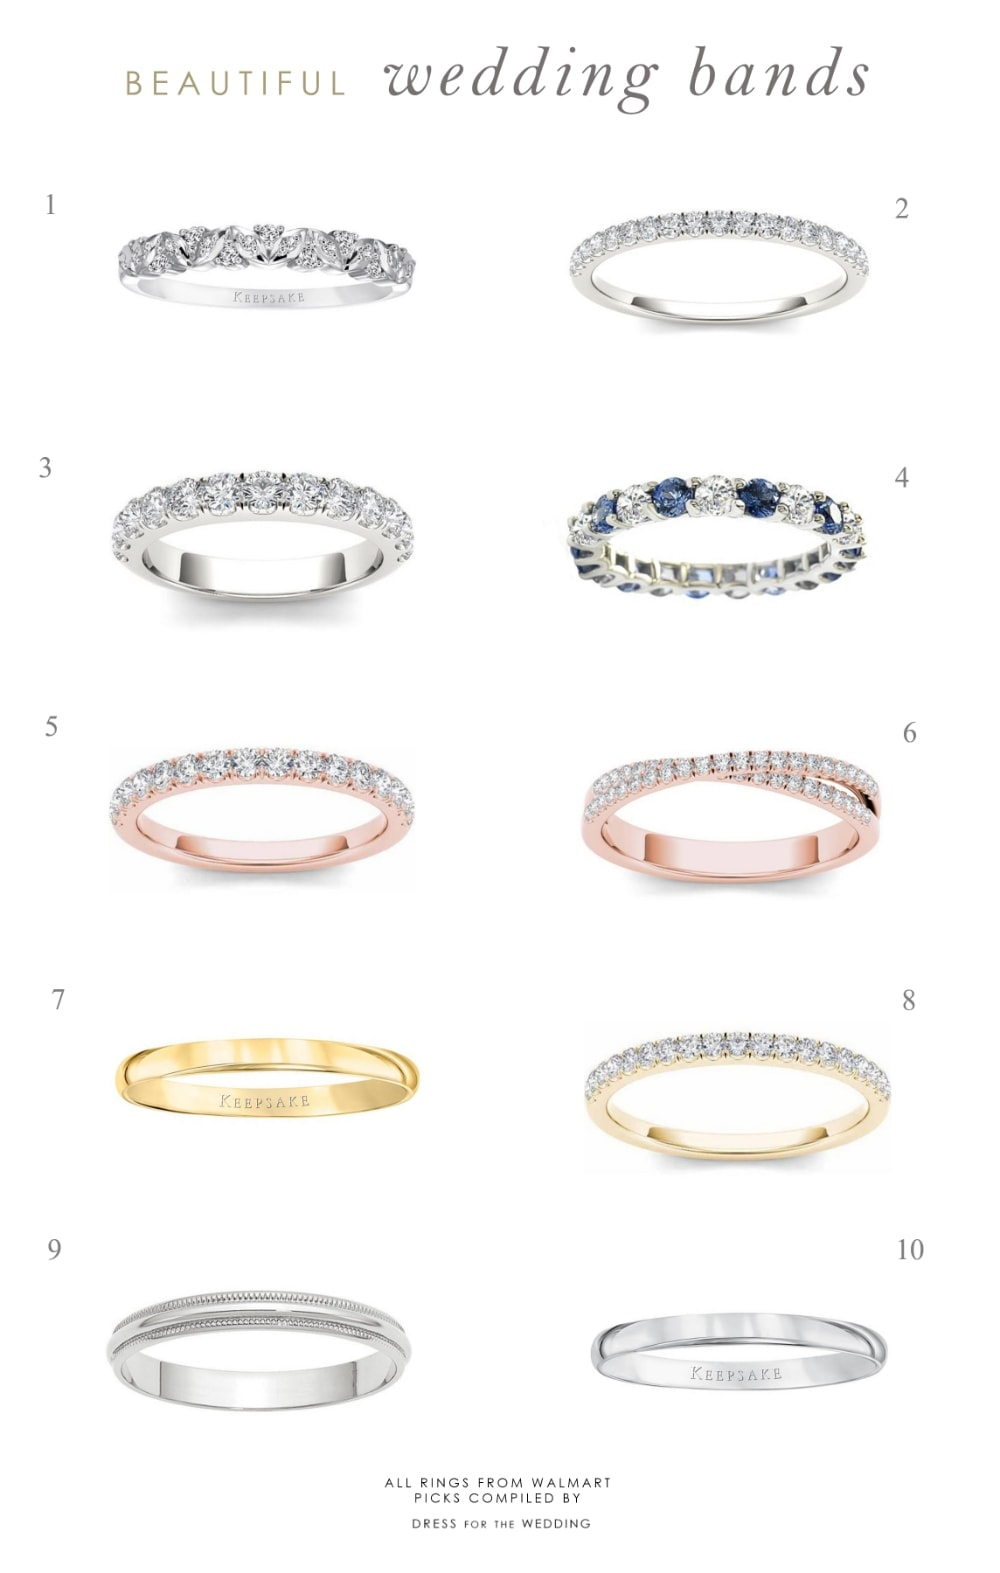 This is a photo of Wedding Bands and Jewelry for Your Wedding Day Dress for the Wedding